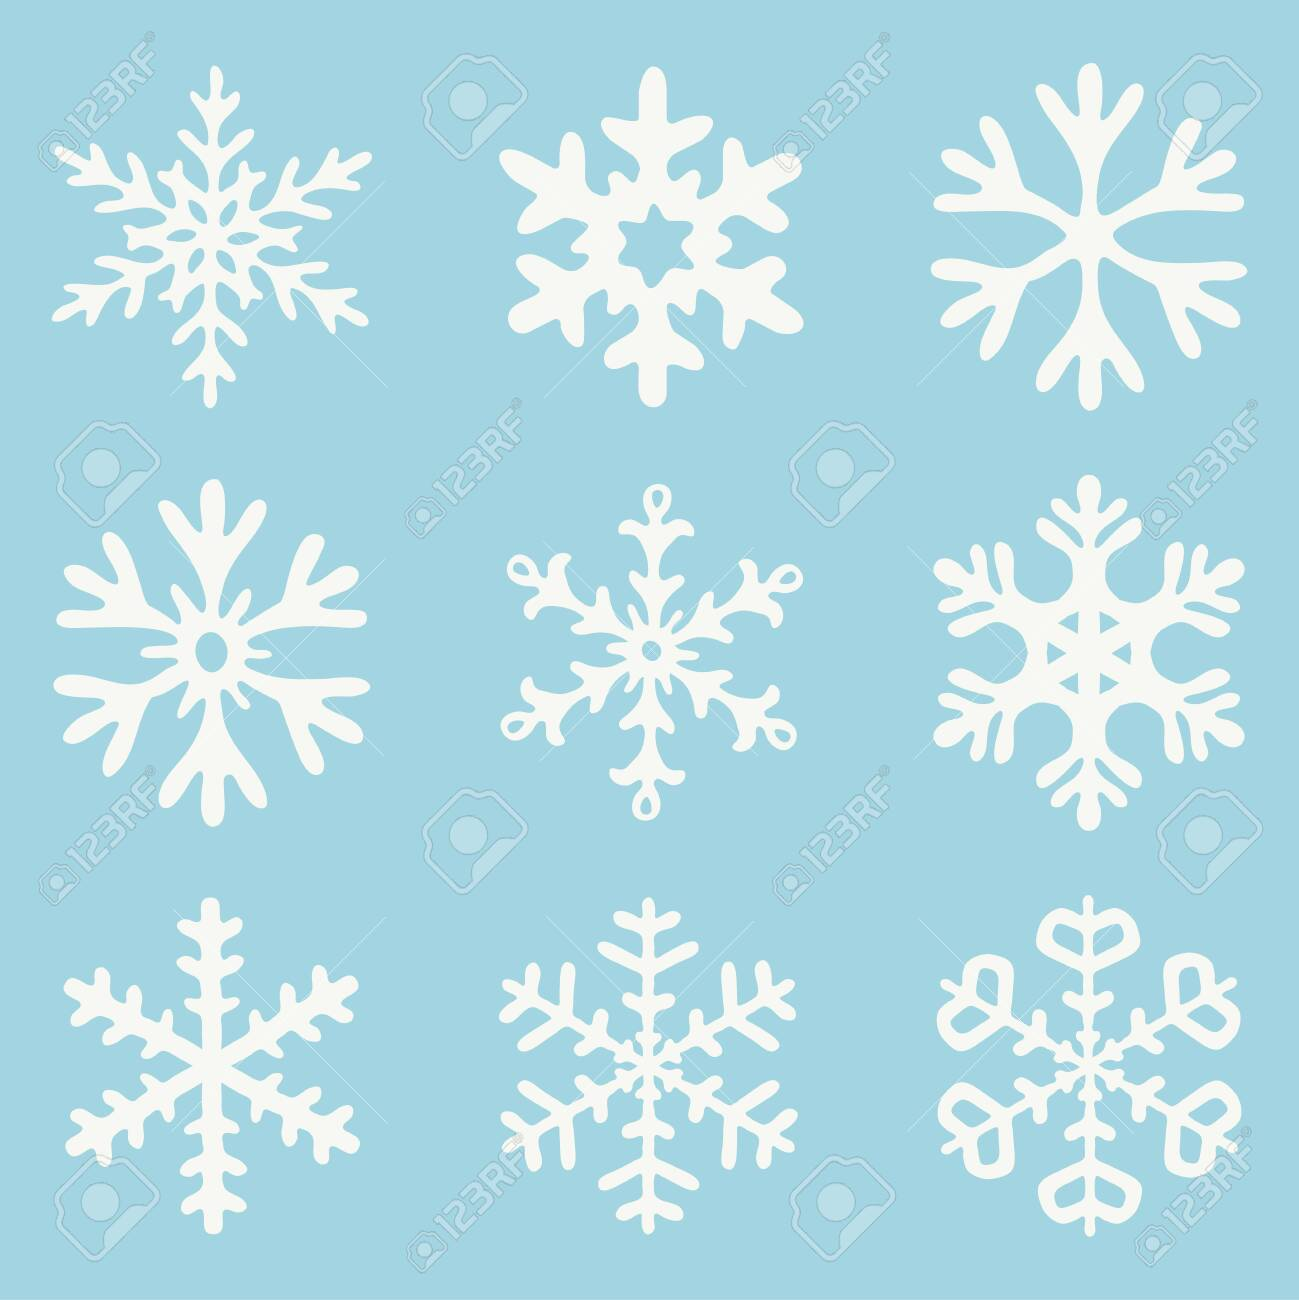 vector set of white snowflakes isolated on blue background. abstract snowflake drawing collection for christmas and winter illustrations - 136981996